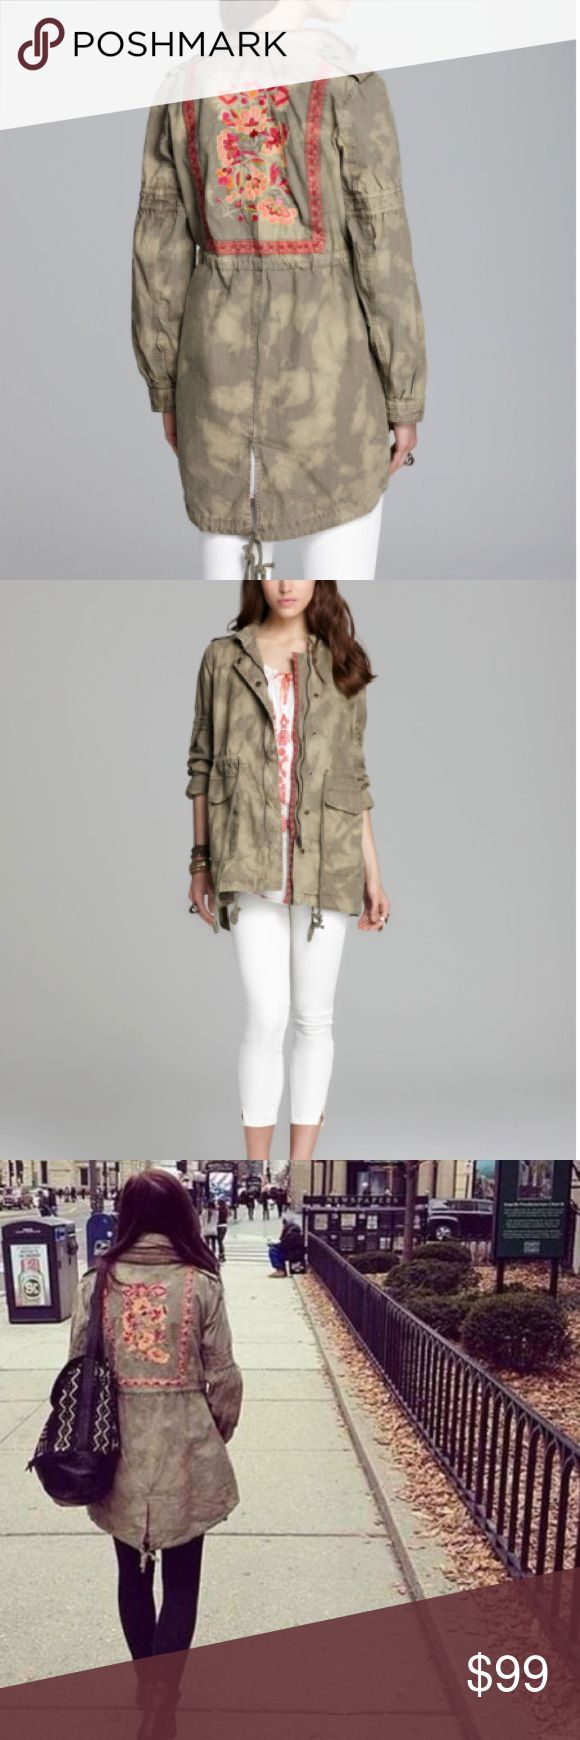 """Free People Festival Embroidered Tye Dye Anorak This festival surplus jacket cinched into a unique shape by plenty of utilitarian details is rare to find and amazing. Embroidery trims the placket and continues on the back, creating a framed floral accent. Approx. length from shoulder: front 31""""; back 34"""". Zip front with snap closure. Stow-away hood. Free People Jackets & Coats"""